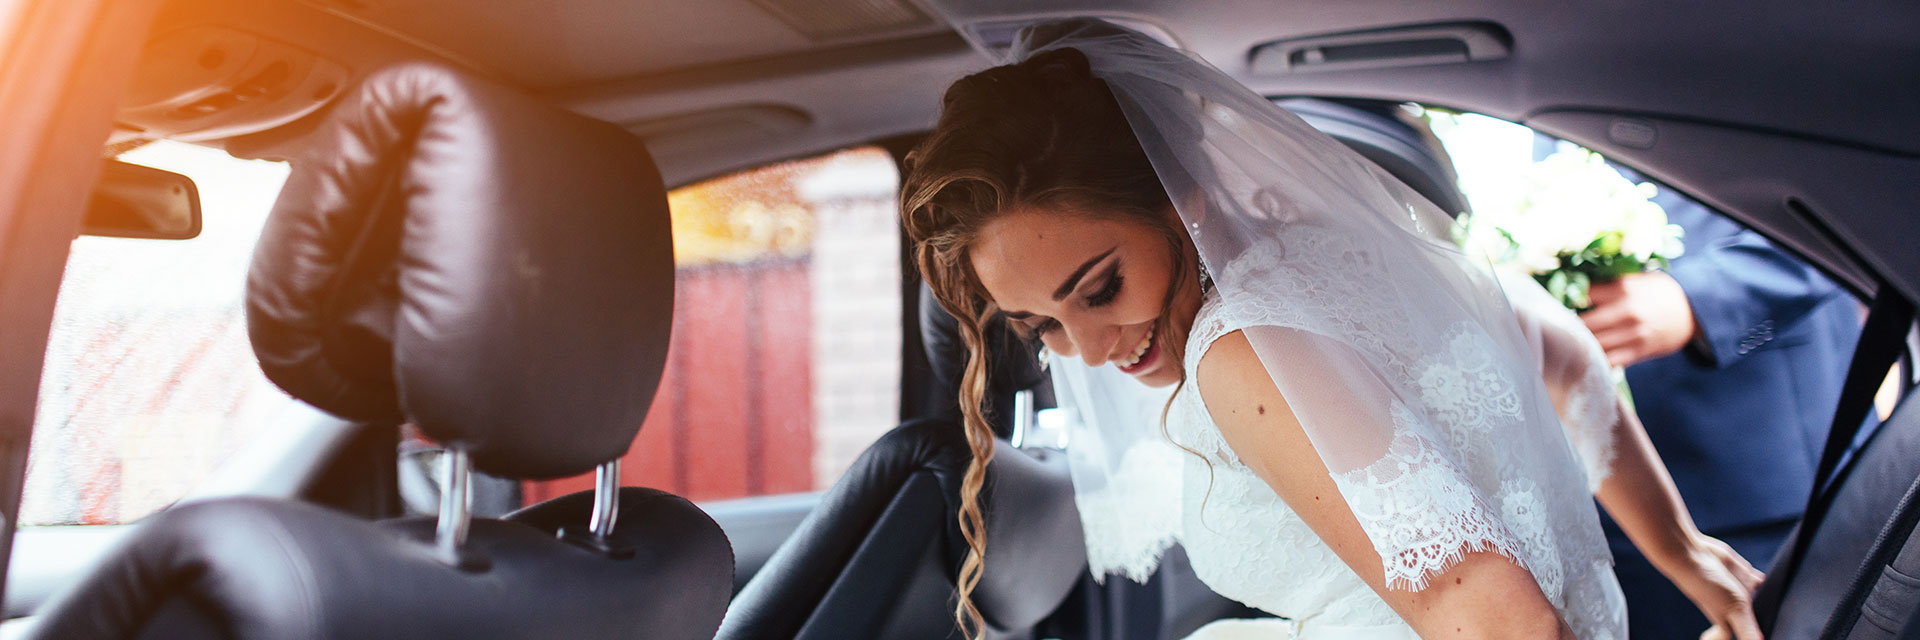 Weybridge Cars & Taxis - Wedding Car Hire